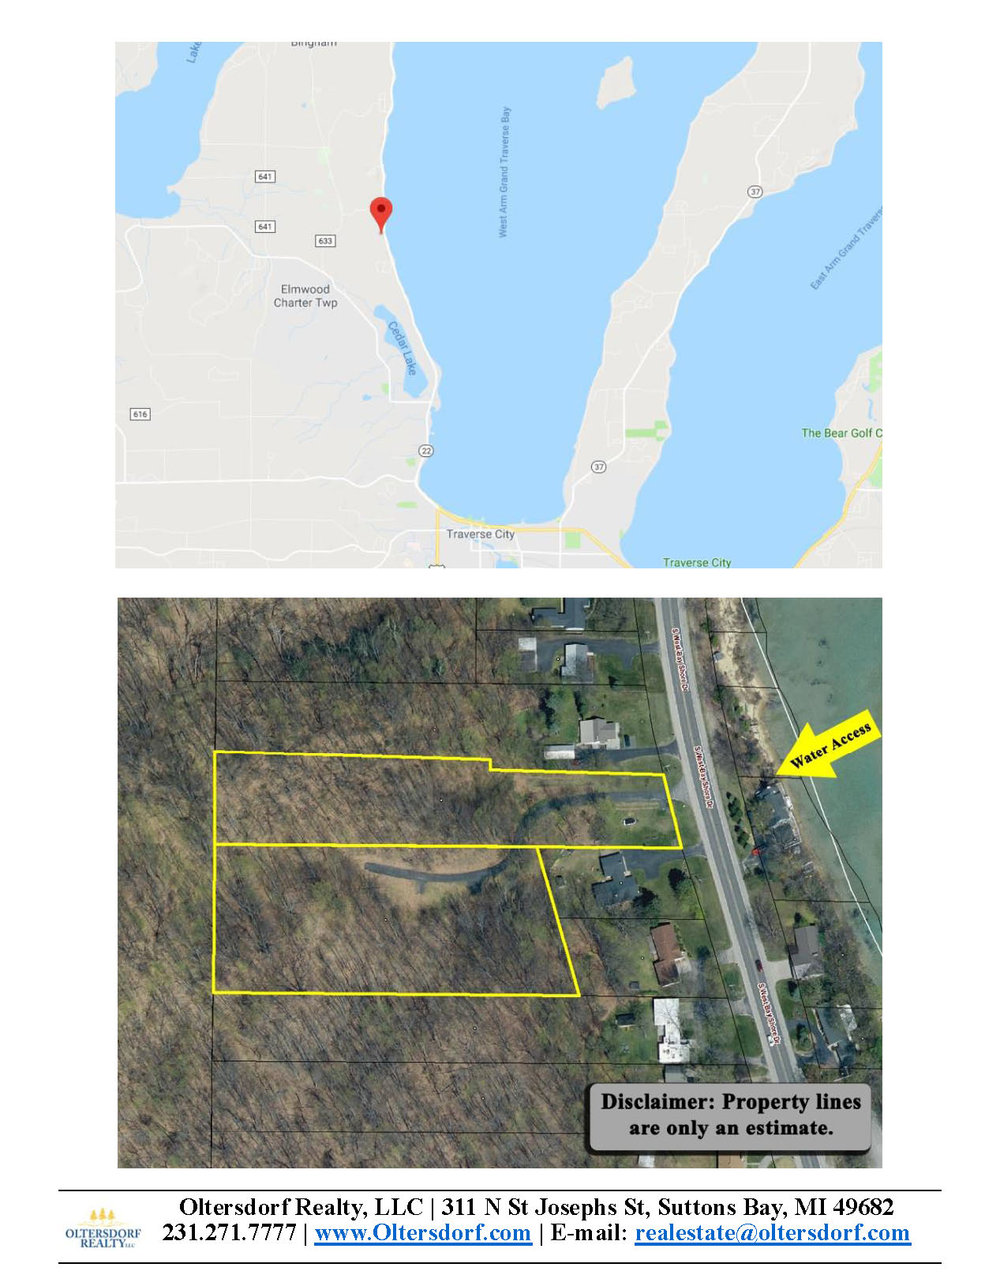 4+ Acres - S West Bayshore Drive, Traverse City – FOR SALE by Oltersdorf Realty - Marketing Packet (6).jpg